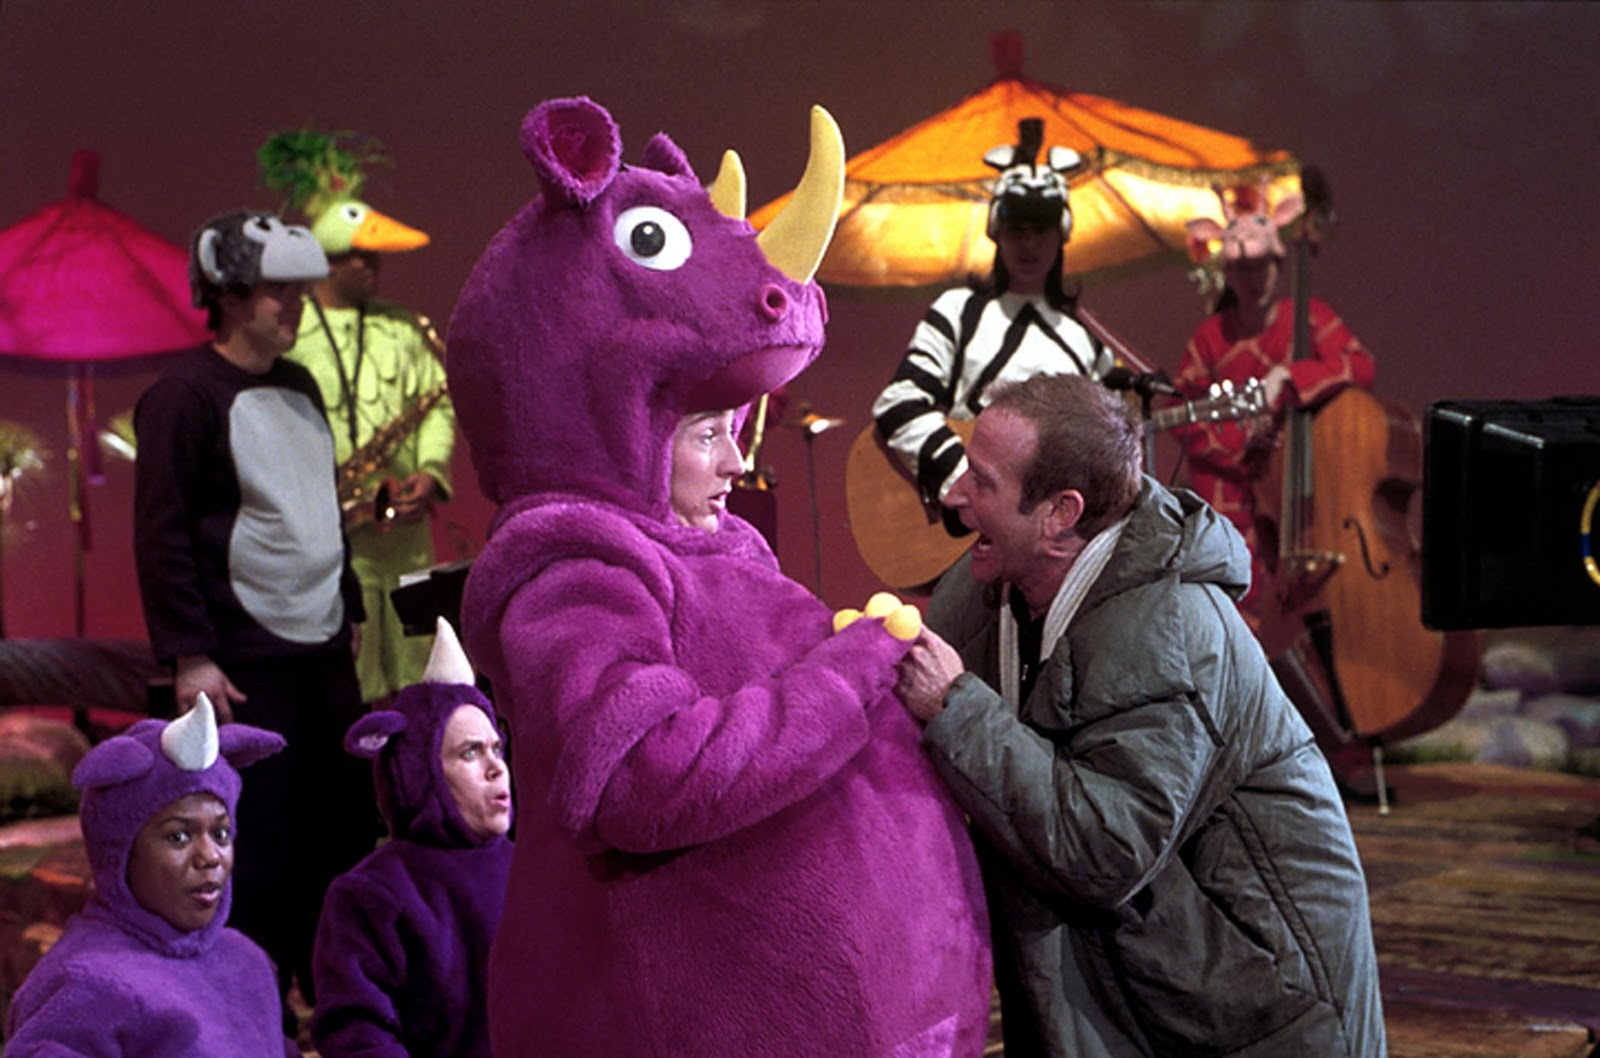 http://3.bp.blogspot.com/_y543NxawePM/TRN0gH_L_bI/AAAAAAAAAEY/4Znd-ZkfP7o/s1600/edward_norton_robin_williams_death_to_smoochy_001.jpg